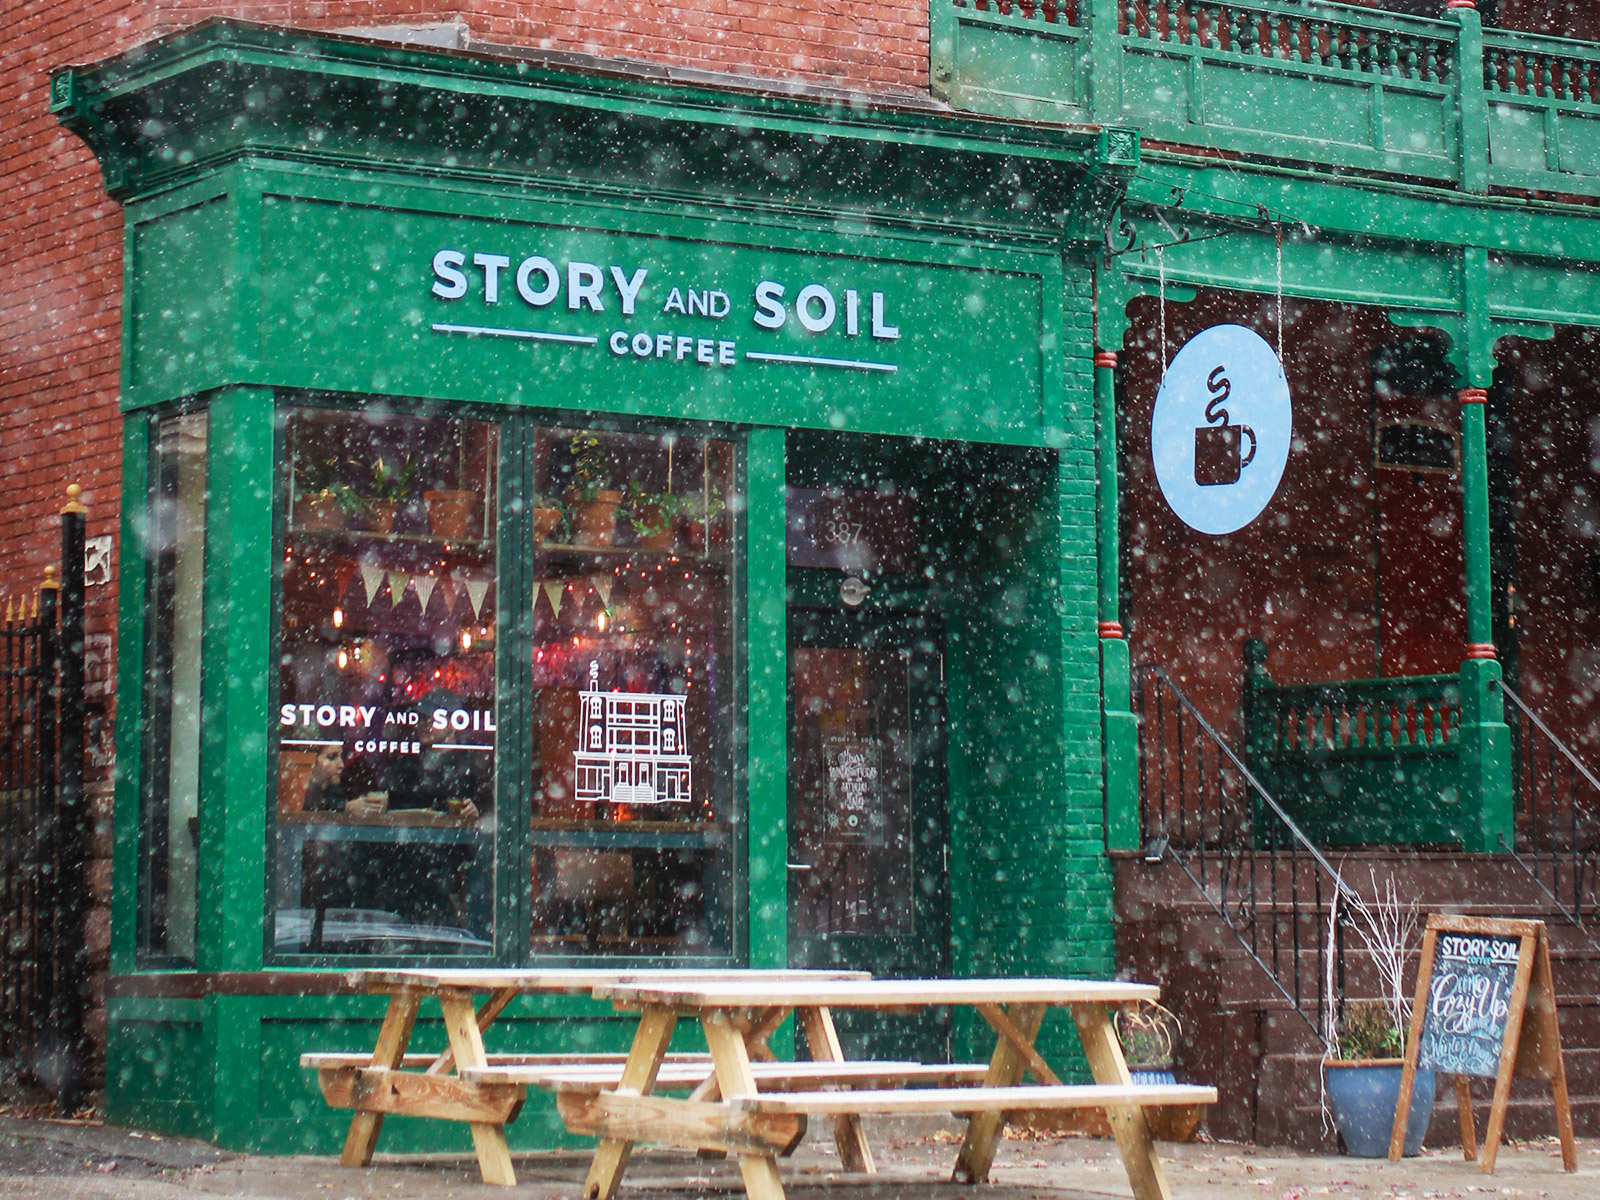 story and soil exterior